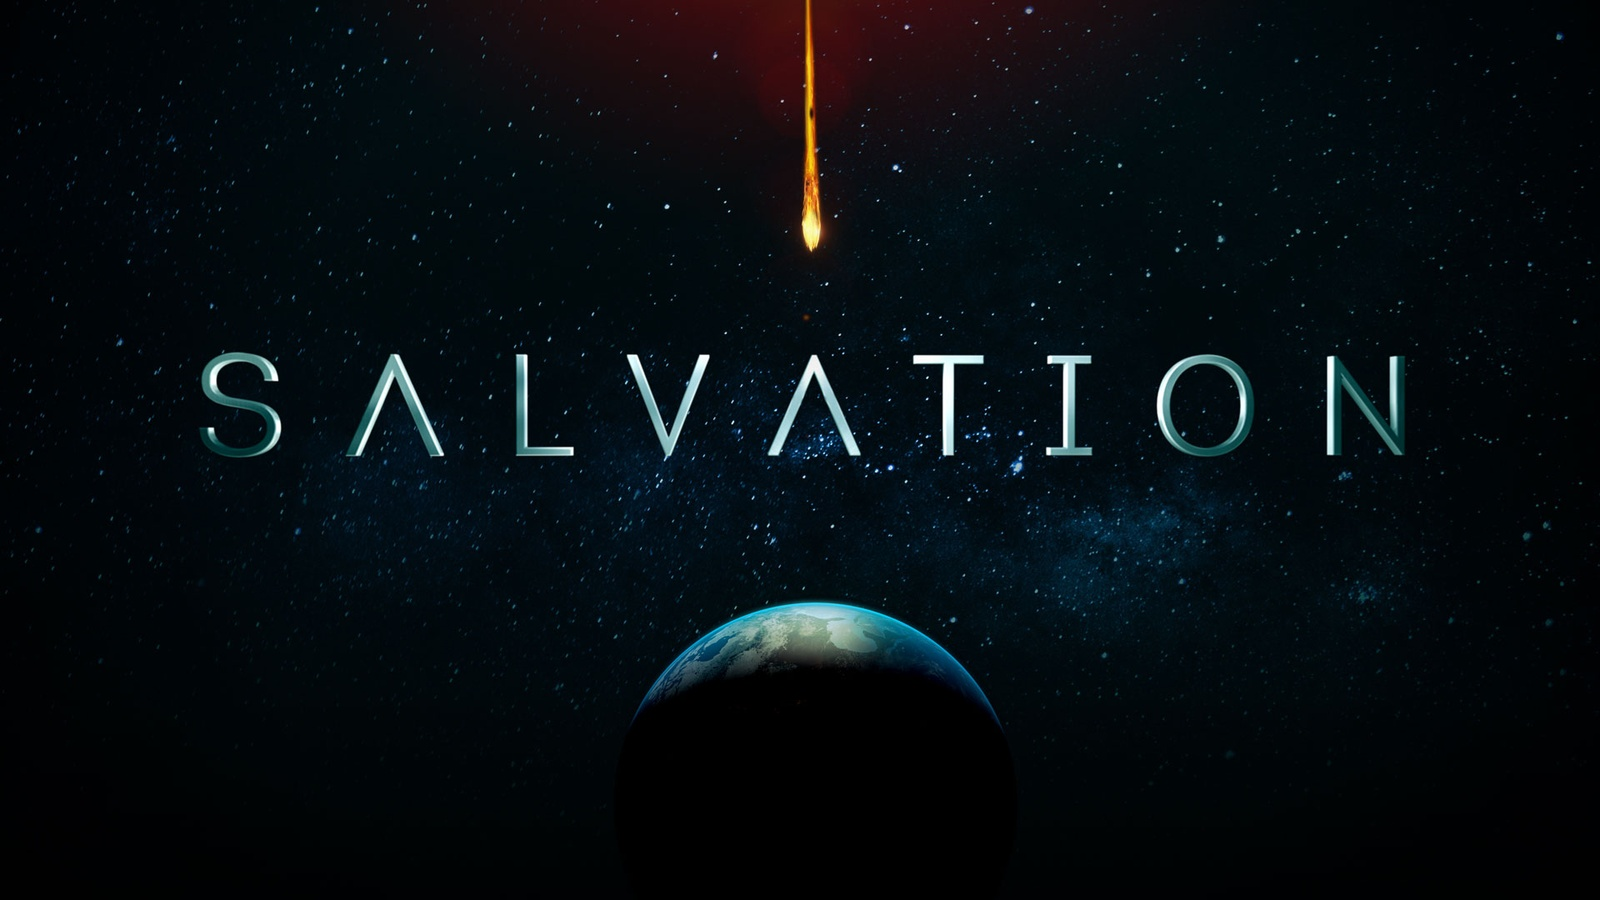 Спасение / Salvation background